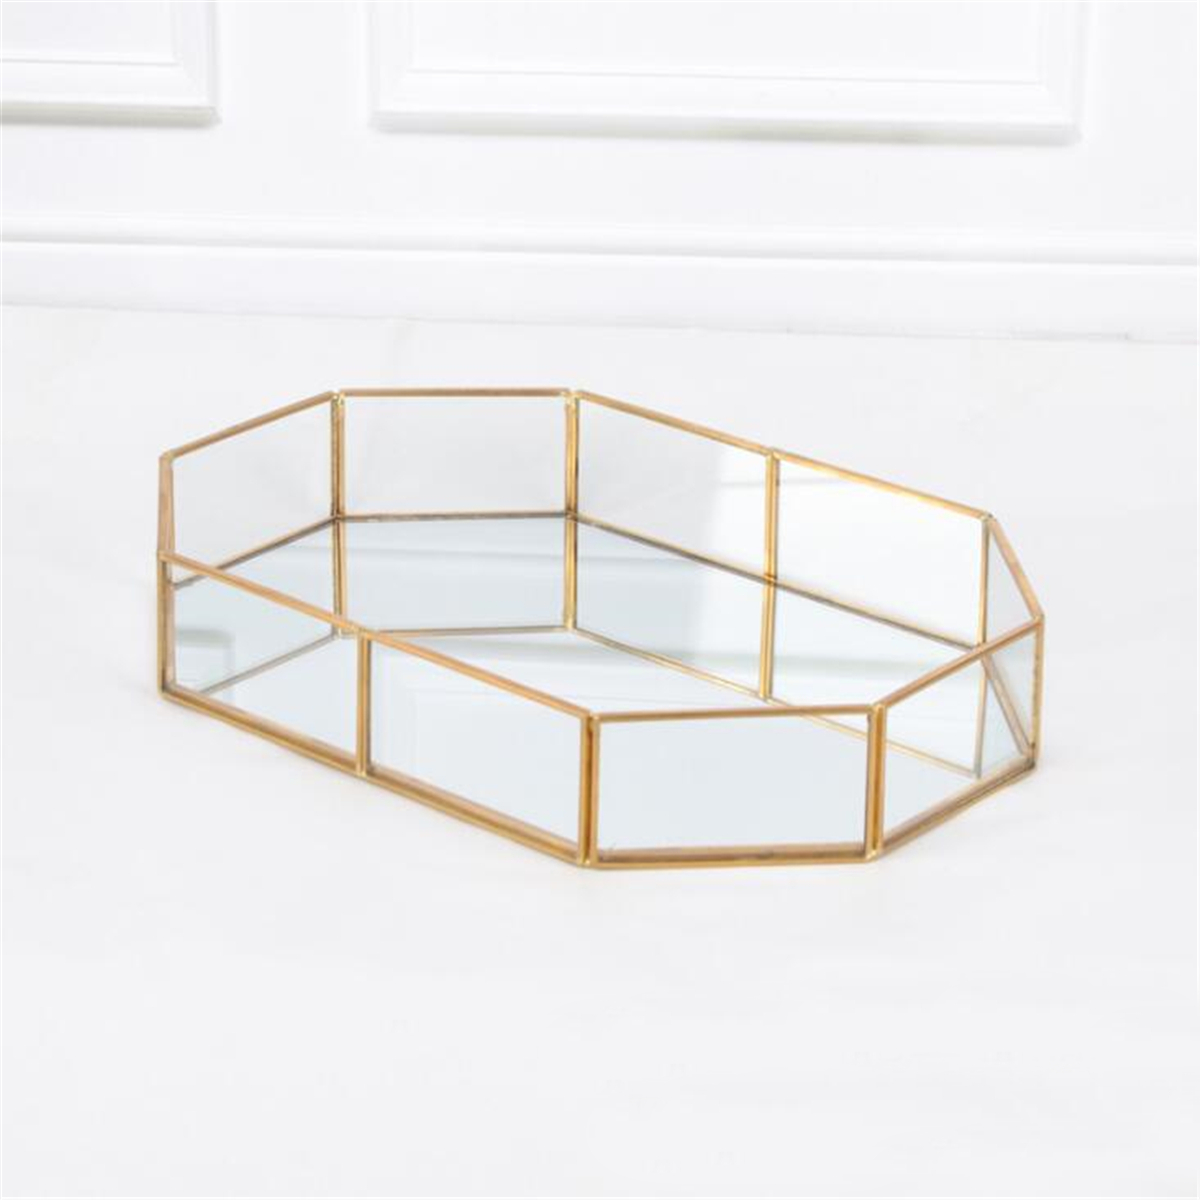 2 Size Mirror Glass Tray Octagon Cosmetic Makeup Desktop Organizer Jewelry Display Stand Holder